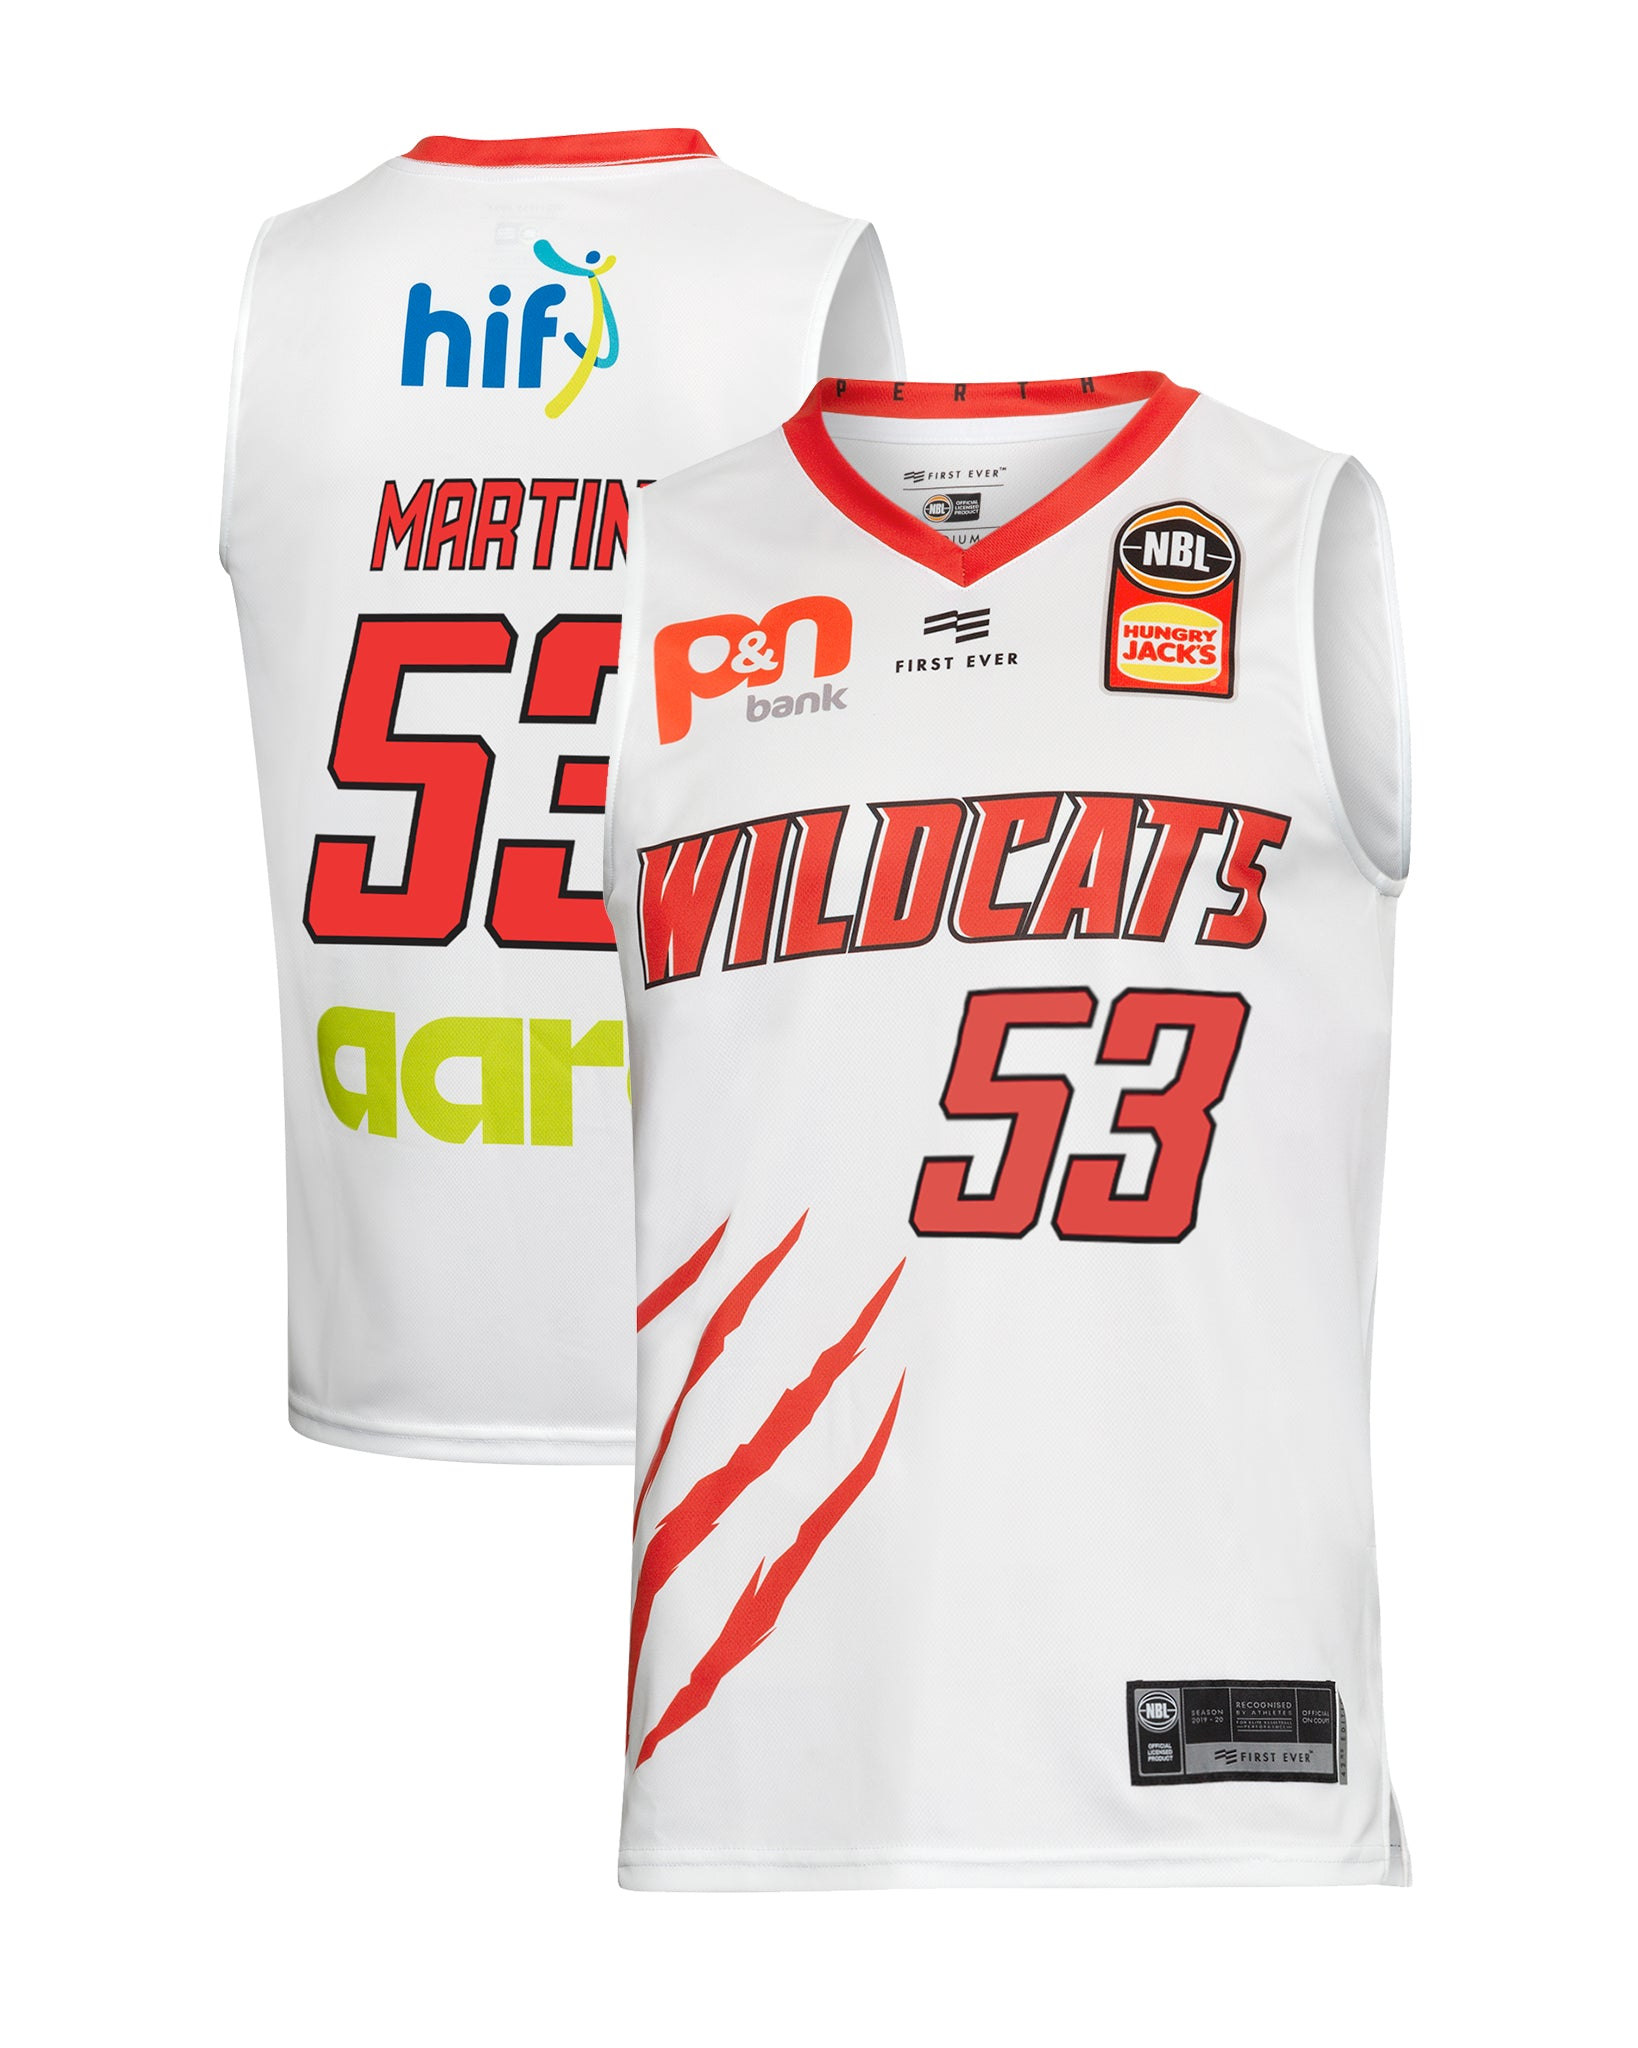 Perth Wildcats 19/20 Authentic Away Jersey - Damian Martin